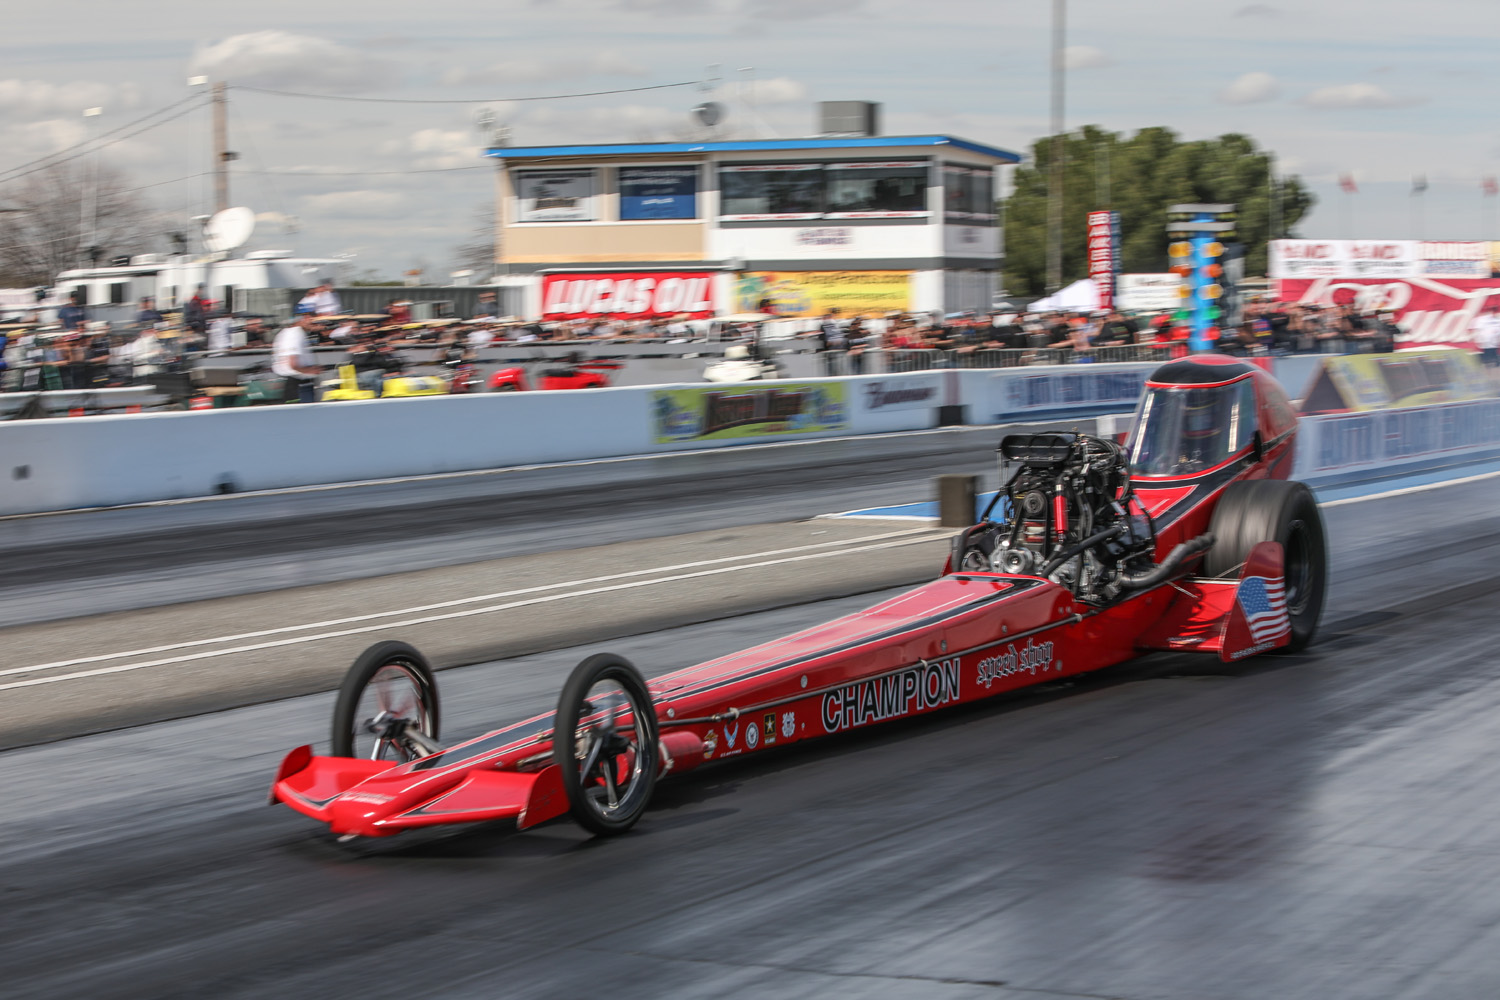 Three ways a nostalgia Top Fuel dragster improves on the past thumbnail